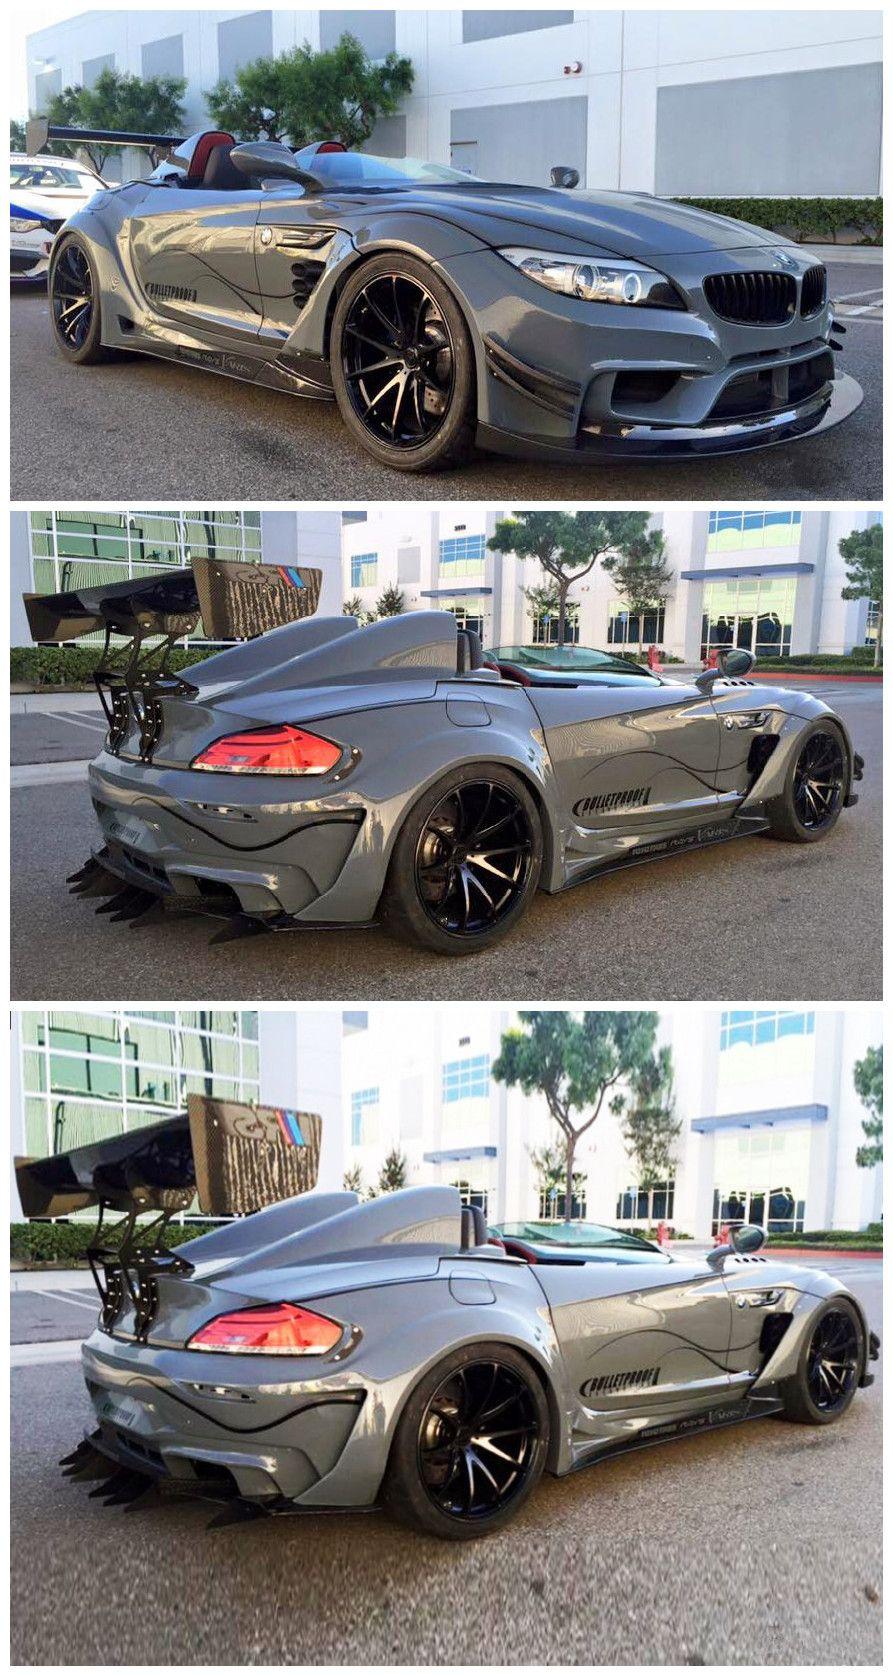 Bulletproof Z4 Gt Continuum Cars Pinterest Cars Bmw And